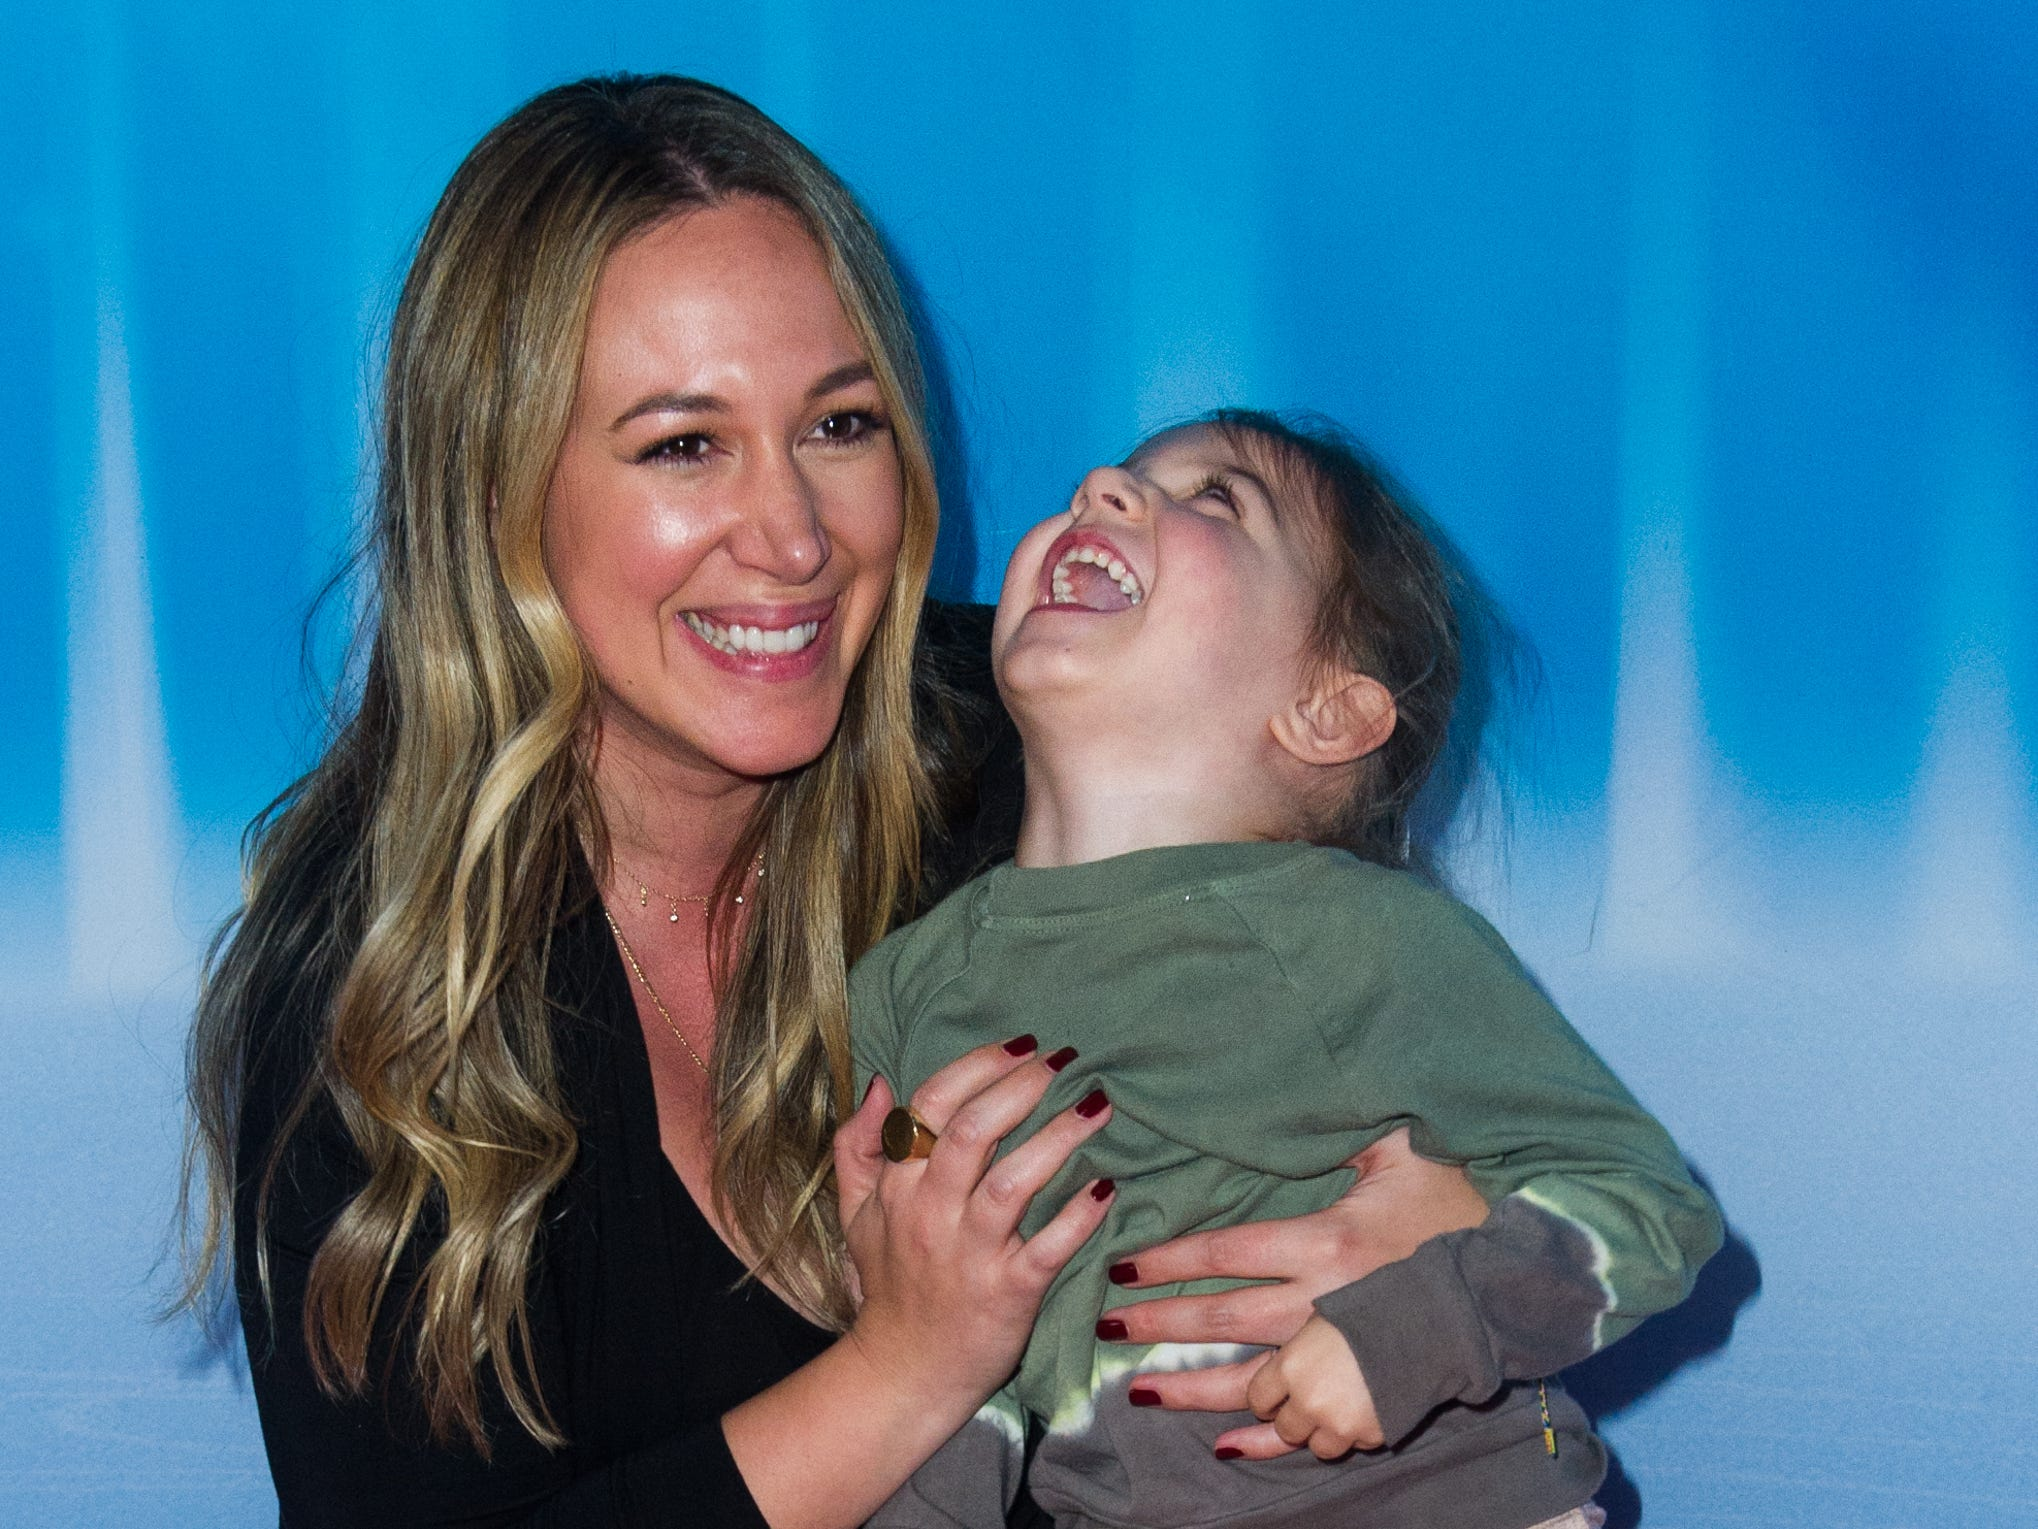 LOS ANGELES, CALIFORNIA - DECEMBER 14: Haylie Duff with daughter Ryan attend Disney On Ice Presents 'Dare To Dream' at Staples Center on December 14, 2018 in Los Angeles, California. (Photo by Rachel Luna/Getty Images) ORG XMIT: 775266660 ORIG FILE ID: 1082700048